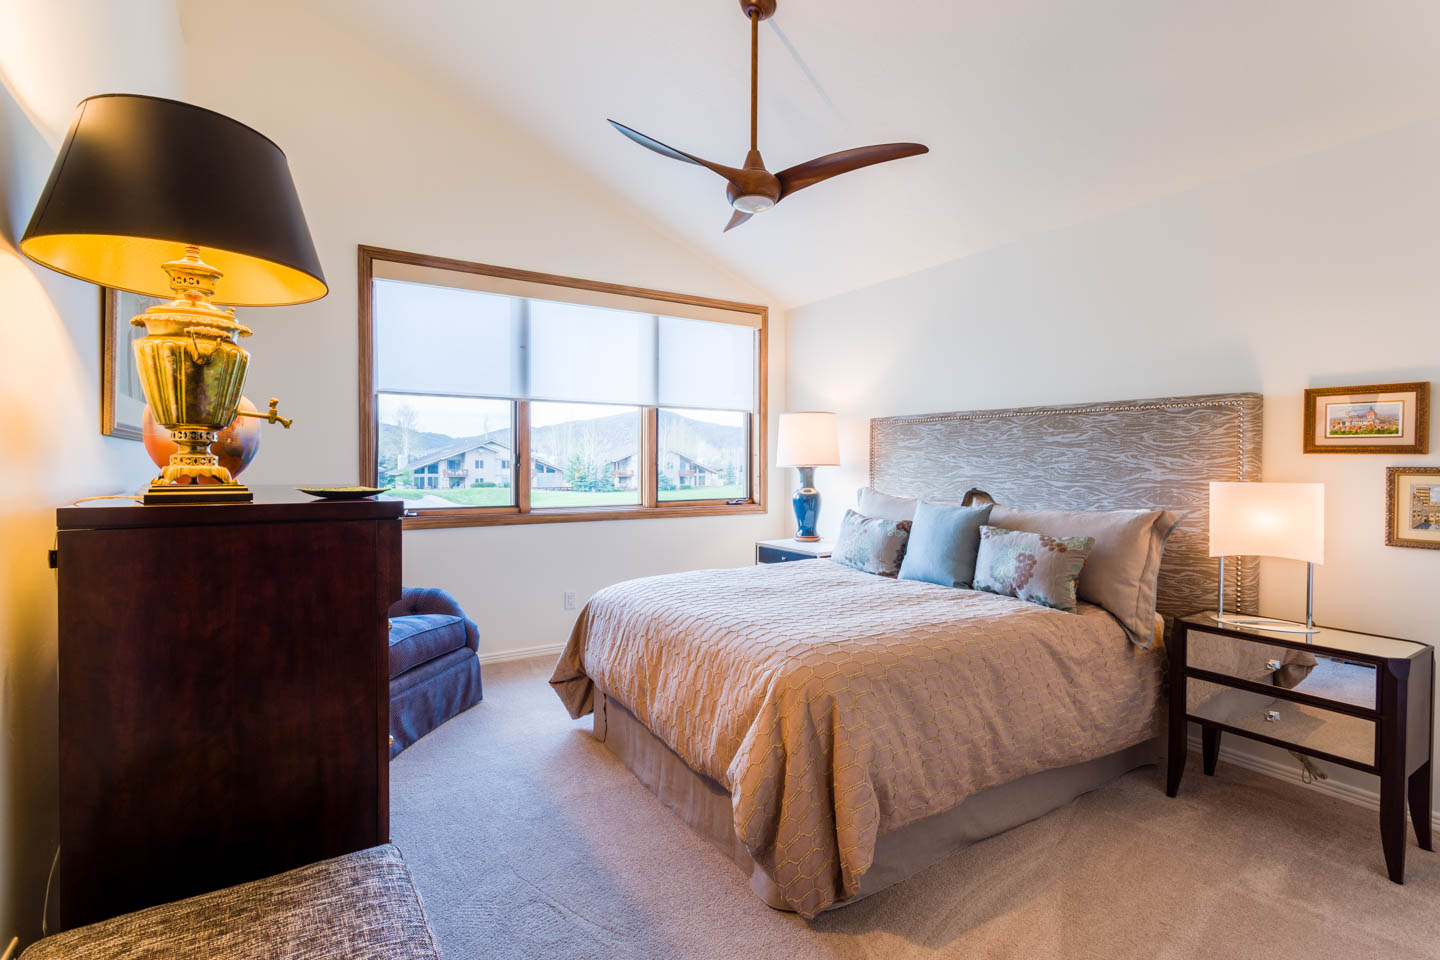 Interior Design Jobs In Park City Utah Amazing Bedroom Living With Best Places For